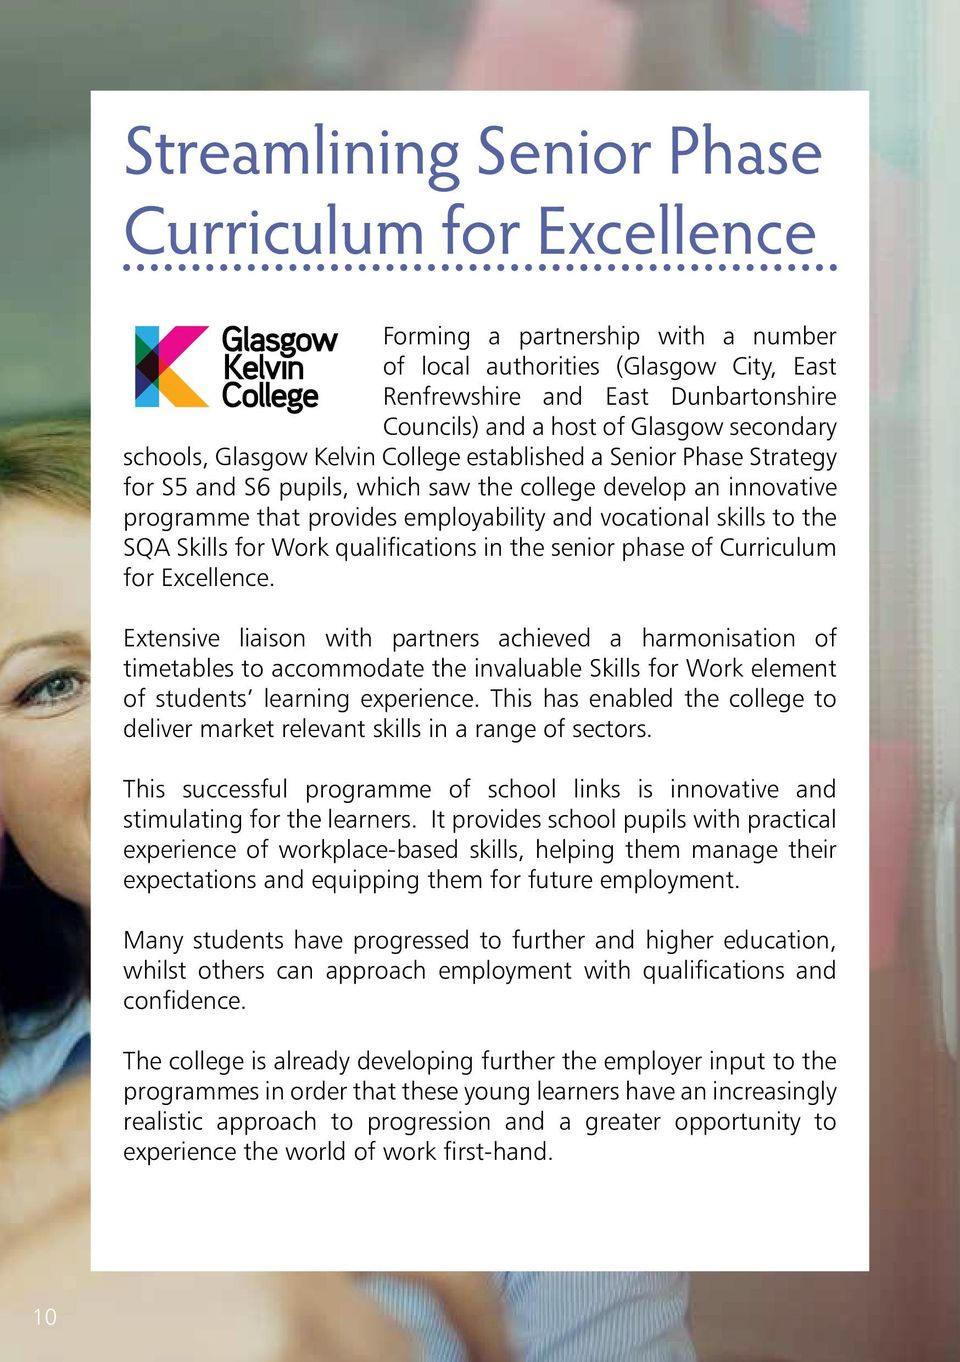 skills to the SQA Skills for Work qualifications in the senior phase of Curriculum for Excellence.